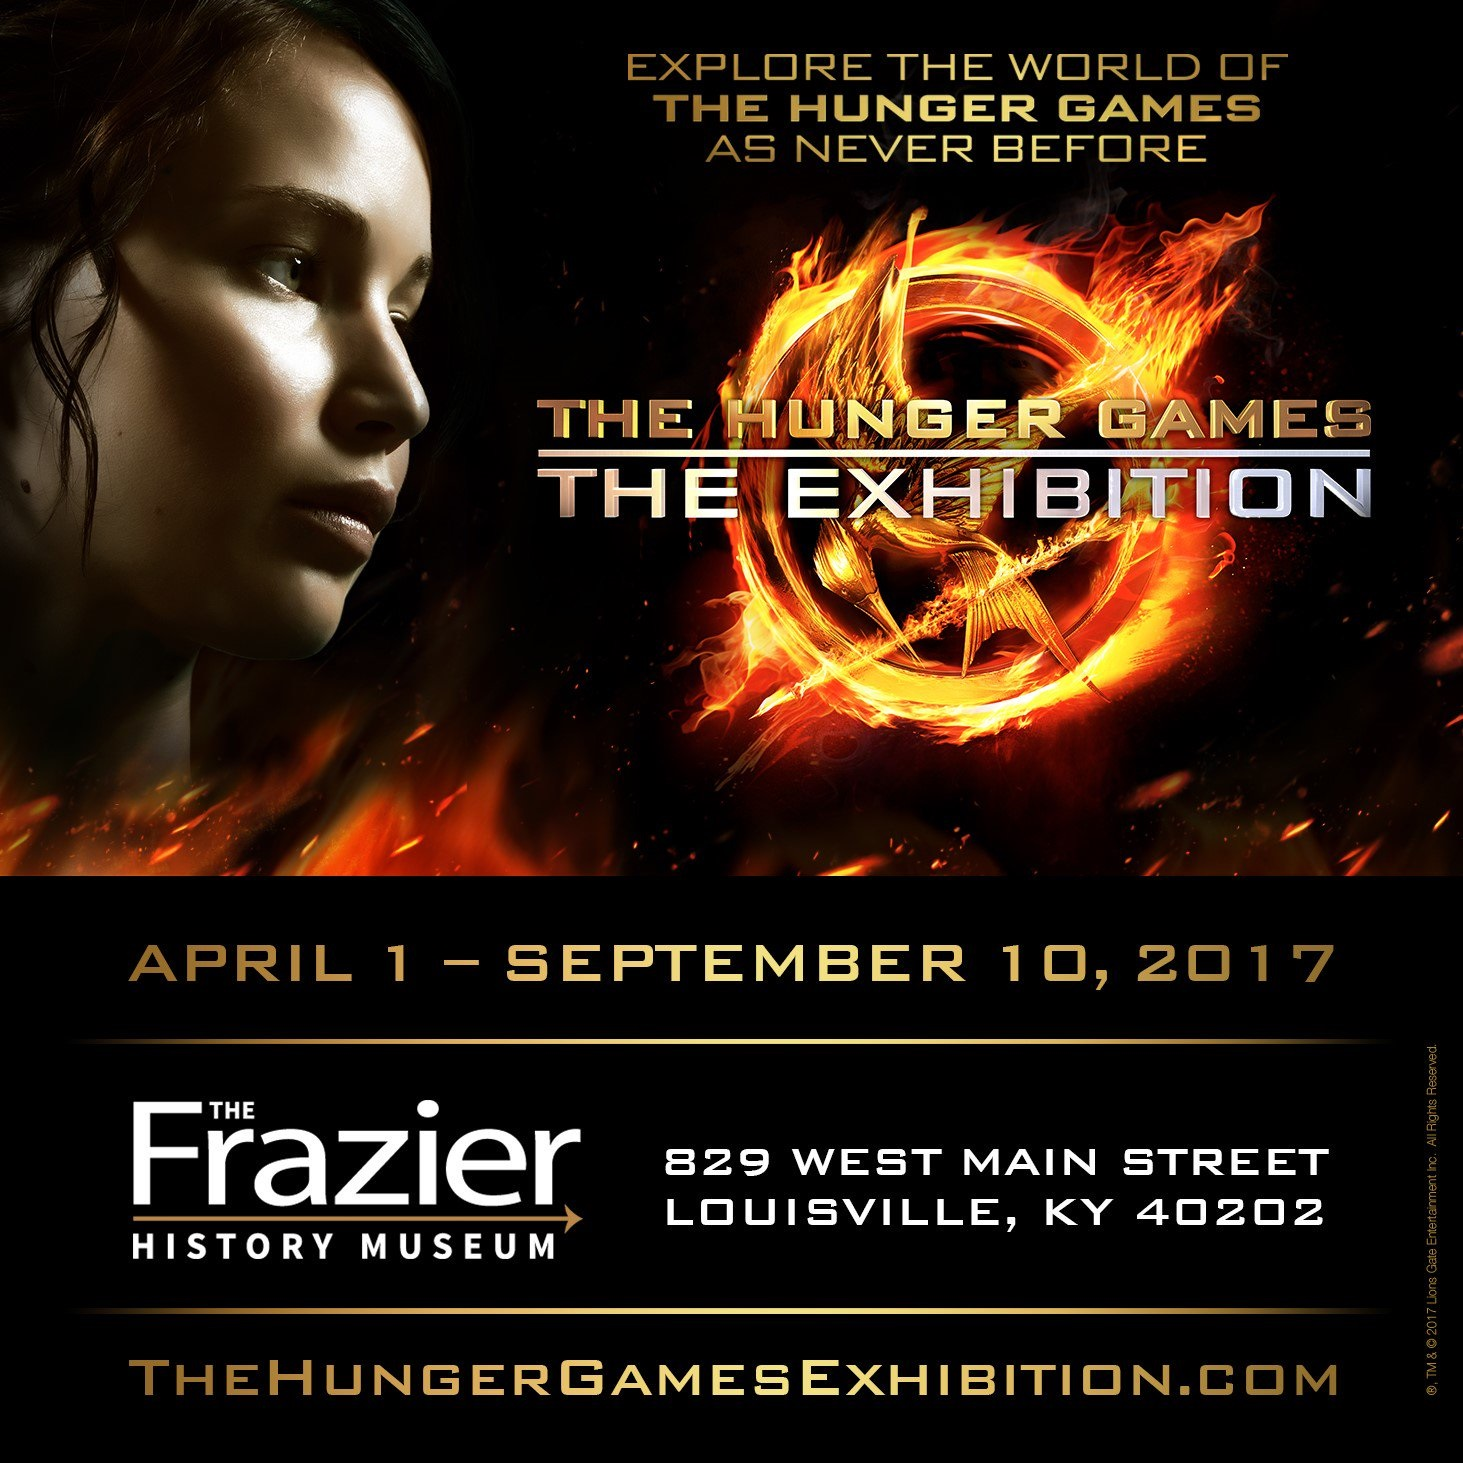 The Hunger Games Exhibition Announces Next Stop in Louisville, KY ...